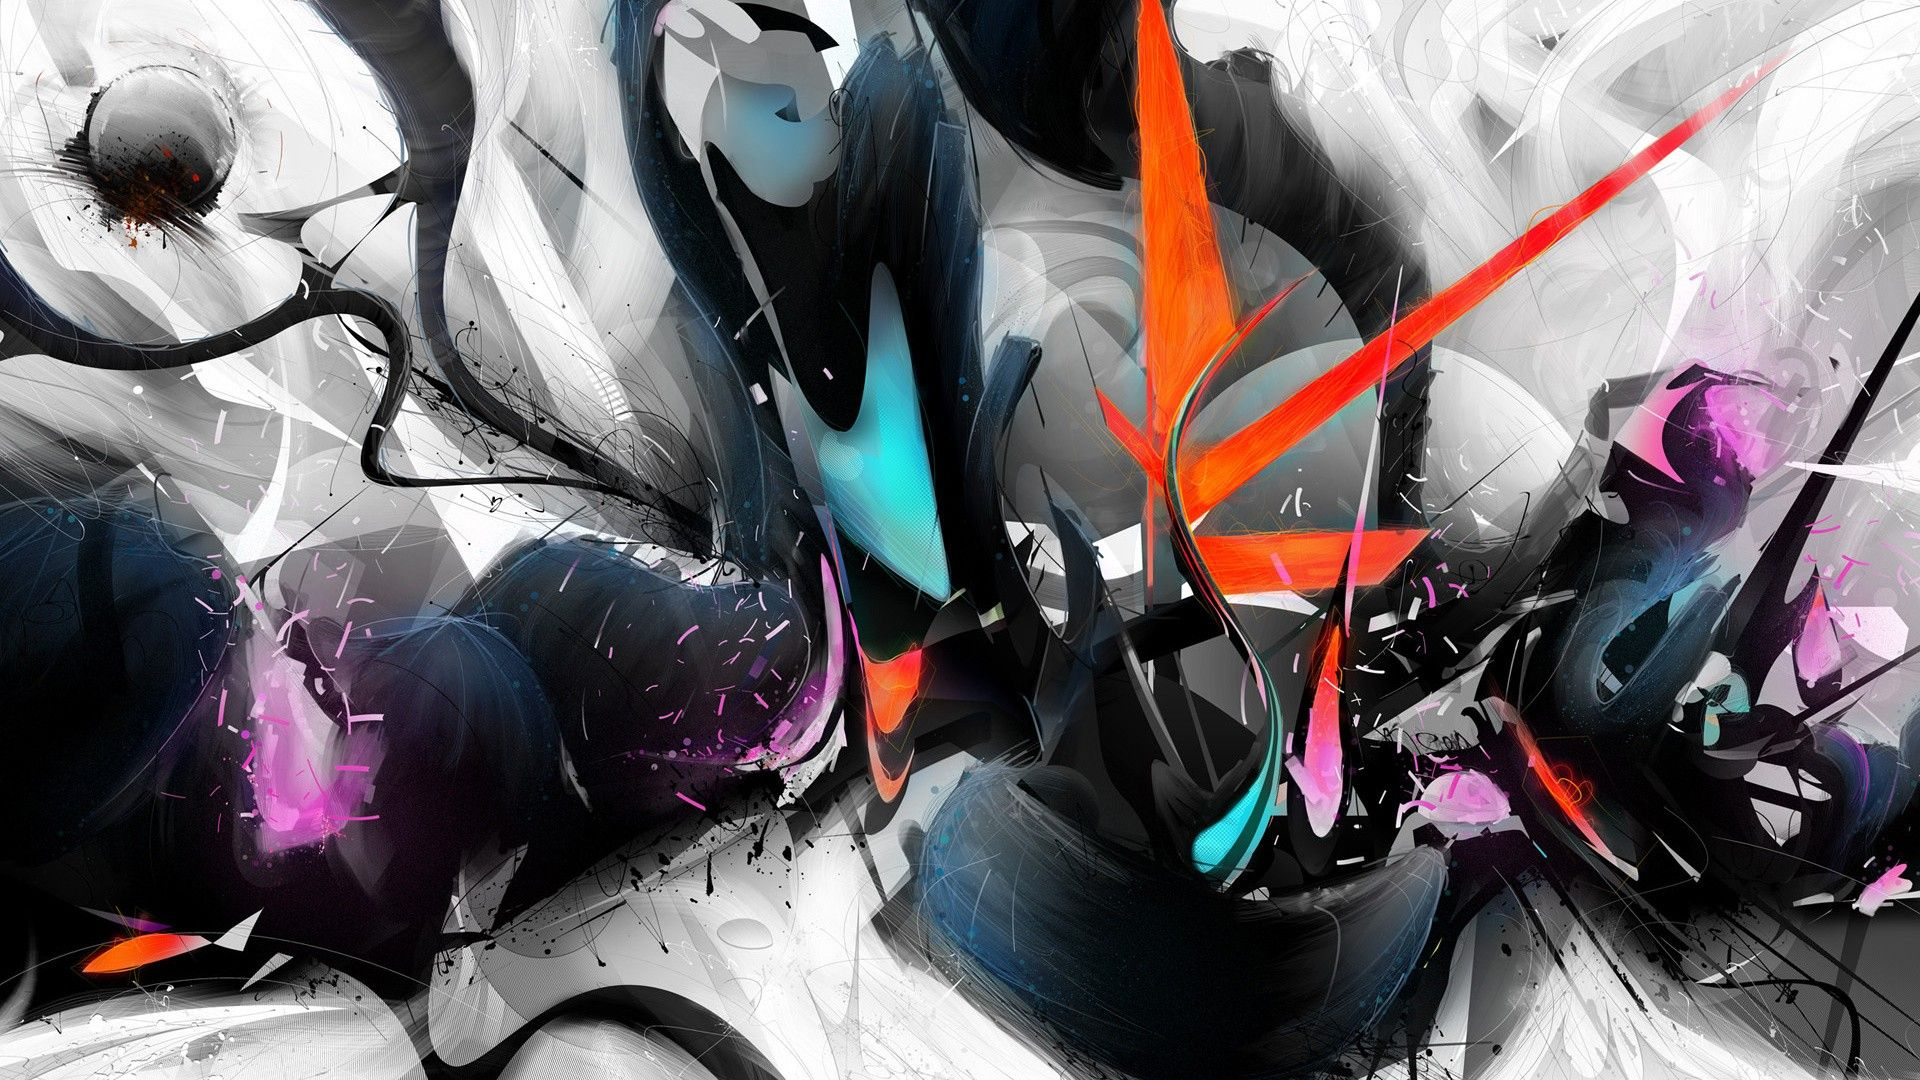 Cool Wallpapers Abstract Designs Hd Wallpaper Cool